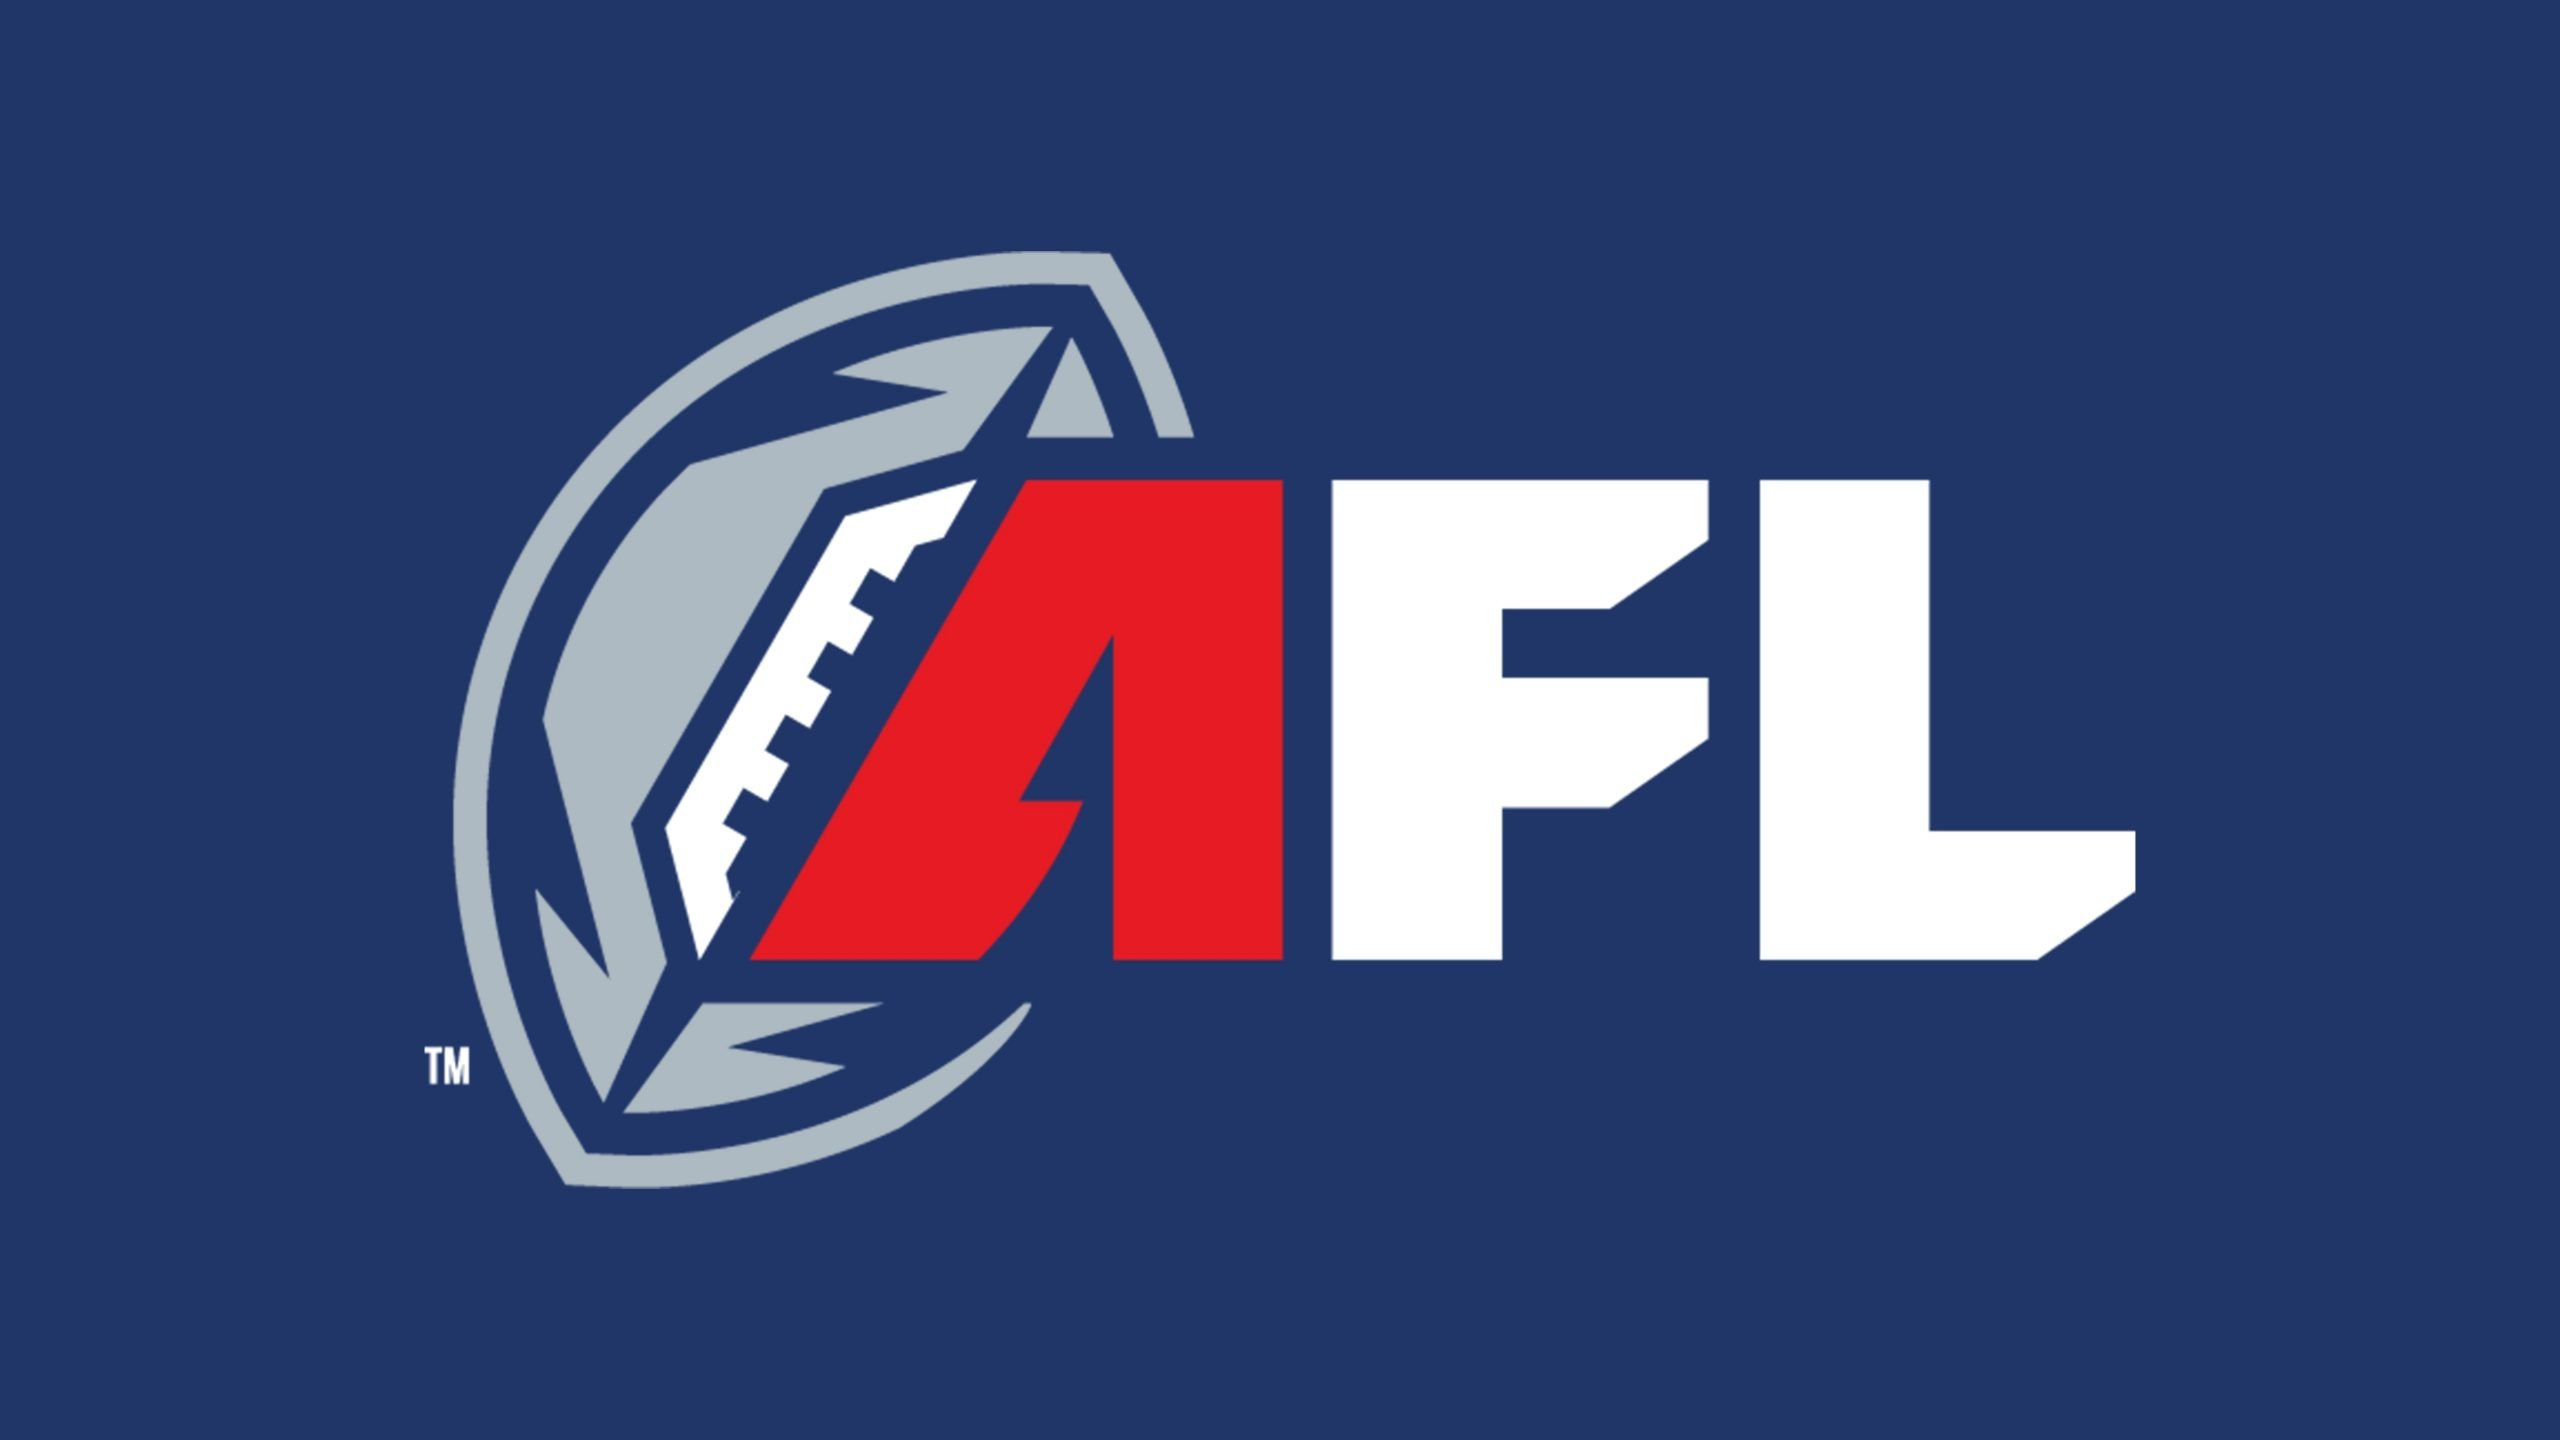 arena-football-logo